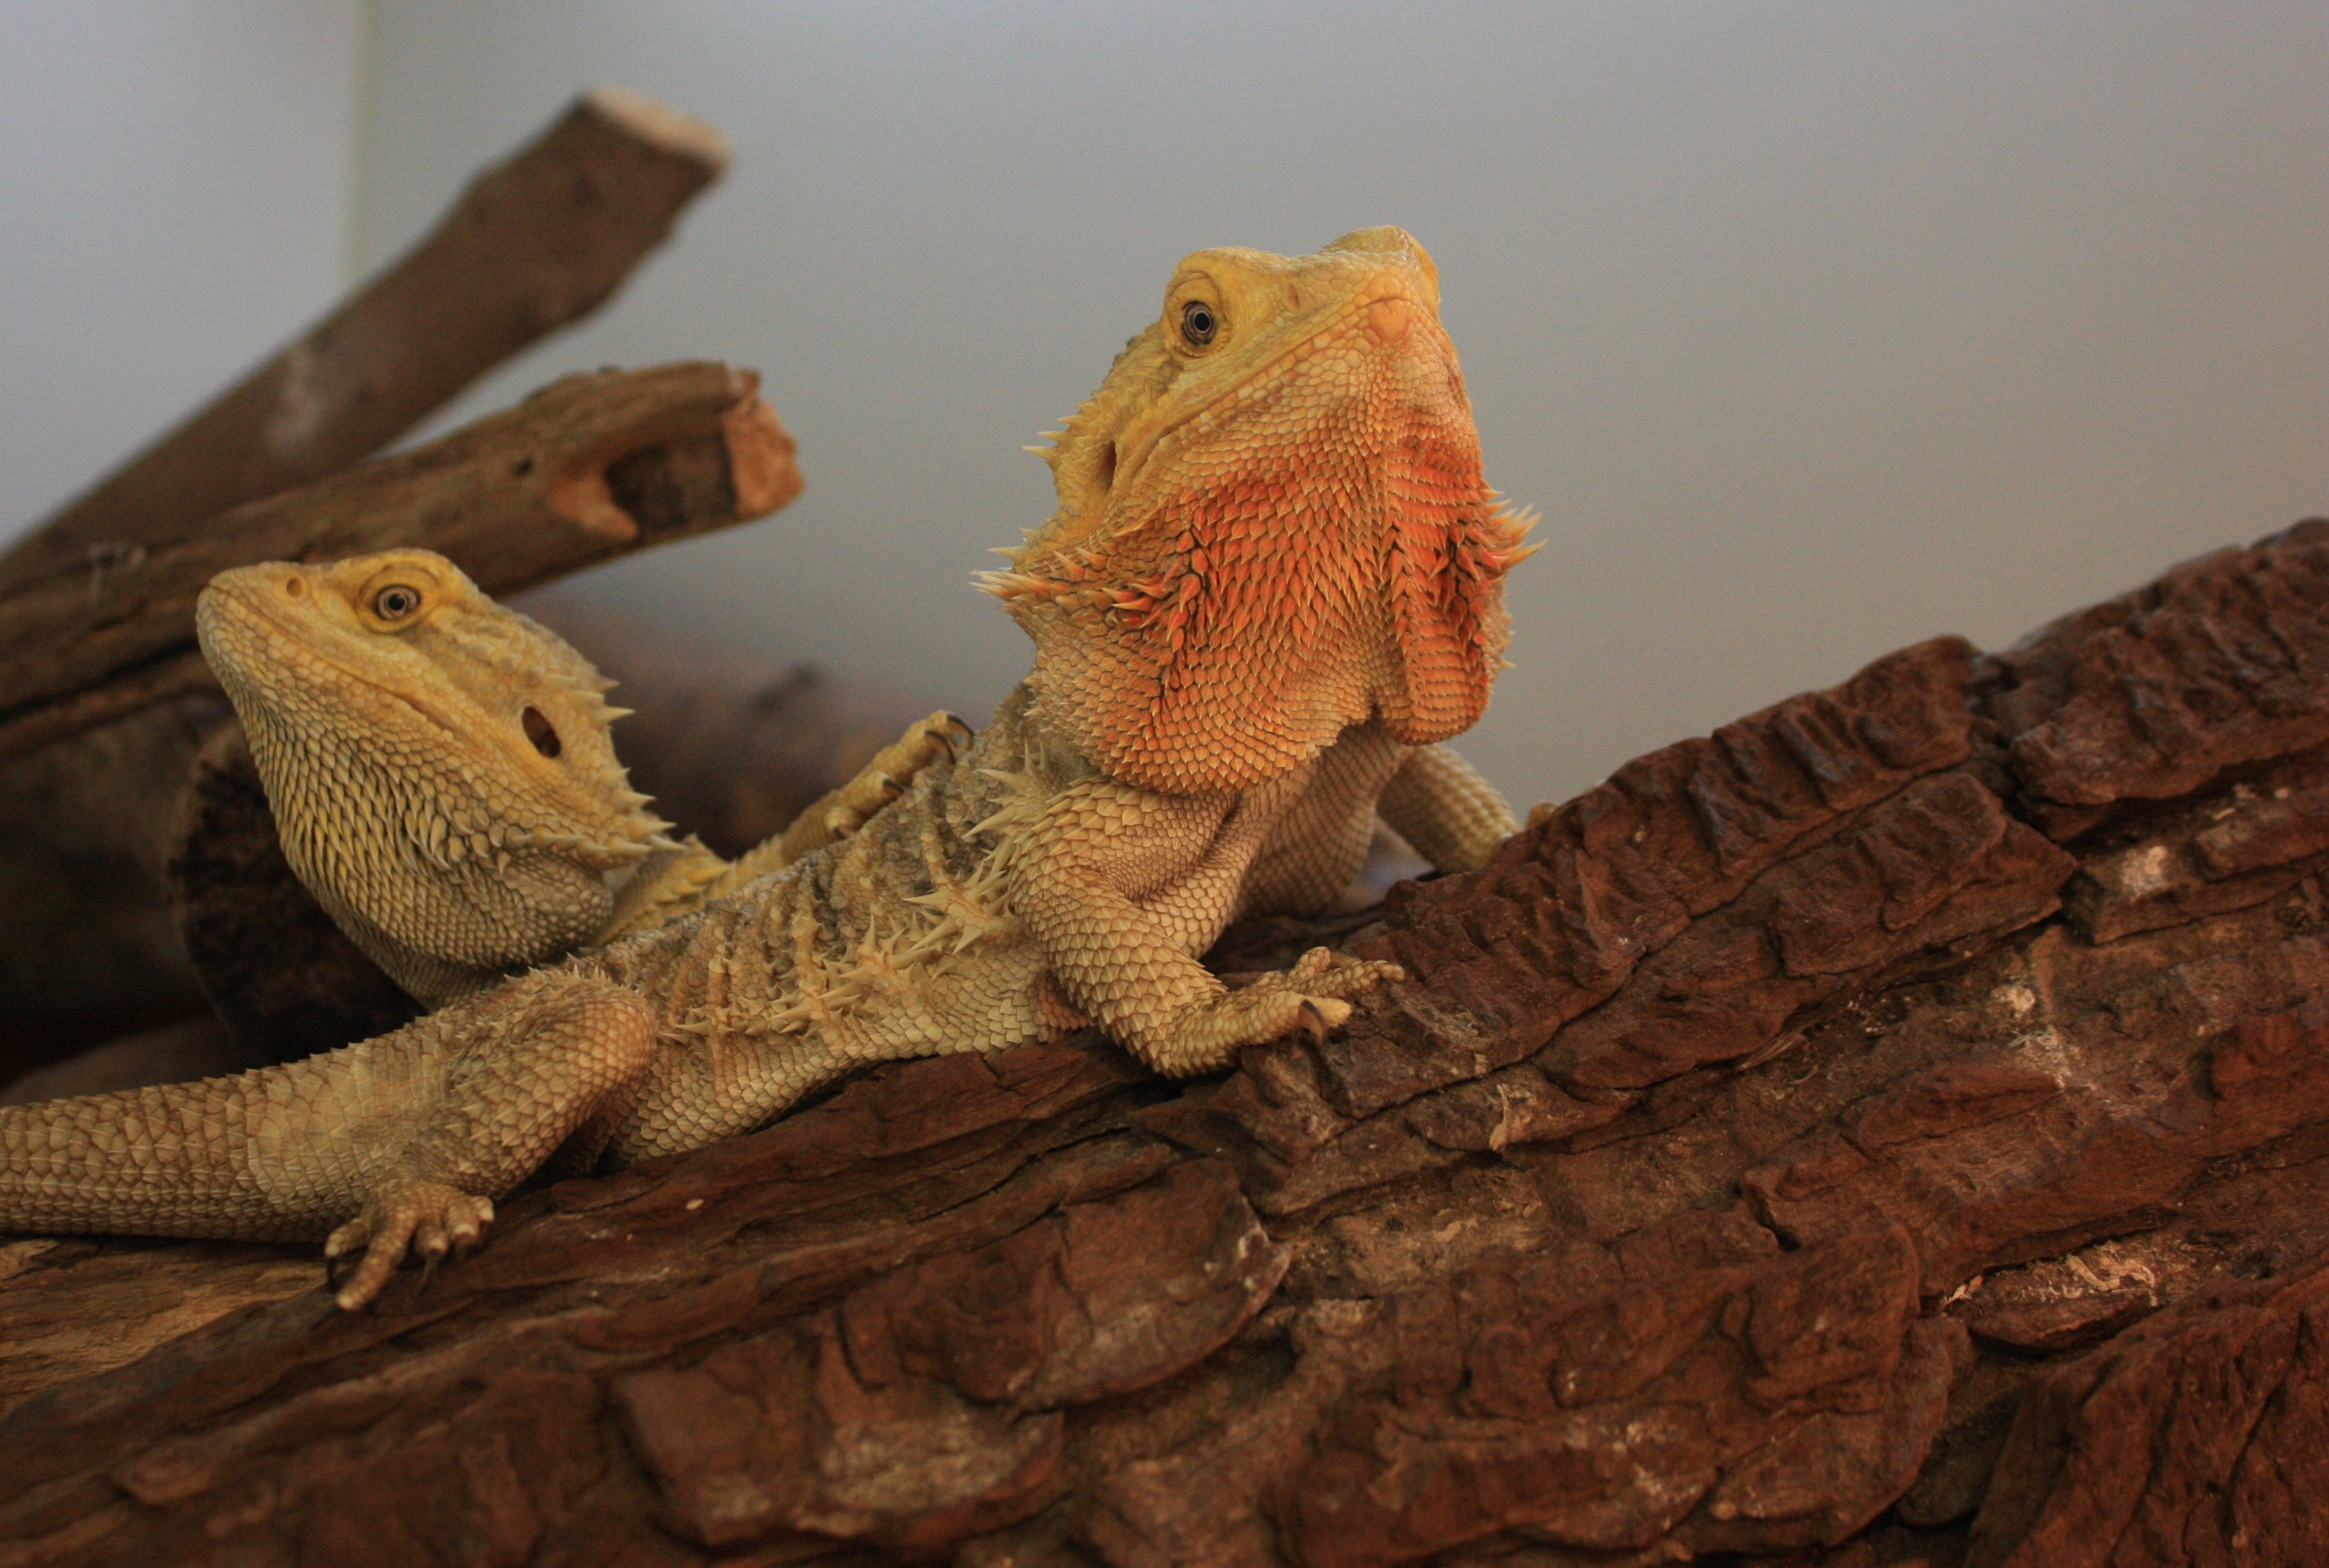 Bearded dragons learn to solve problems by watching others. Credit: Sophie A. Moszuti